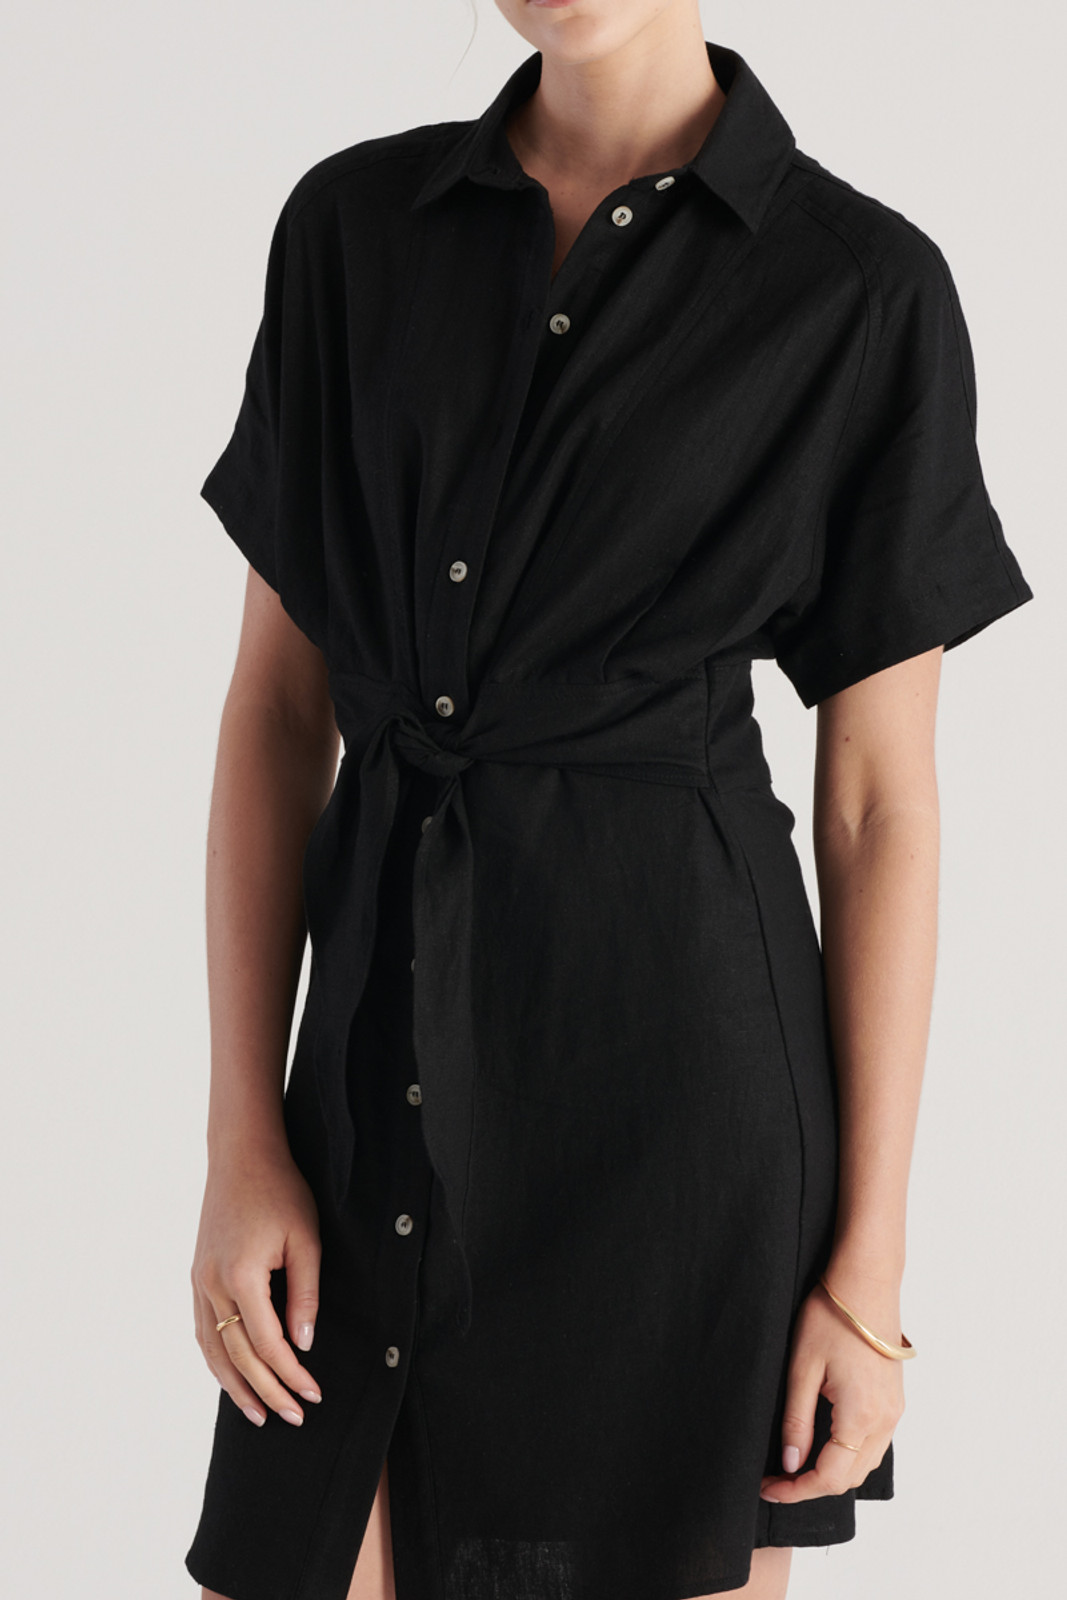 Elka Collective Womens Black Times Dress 4